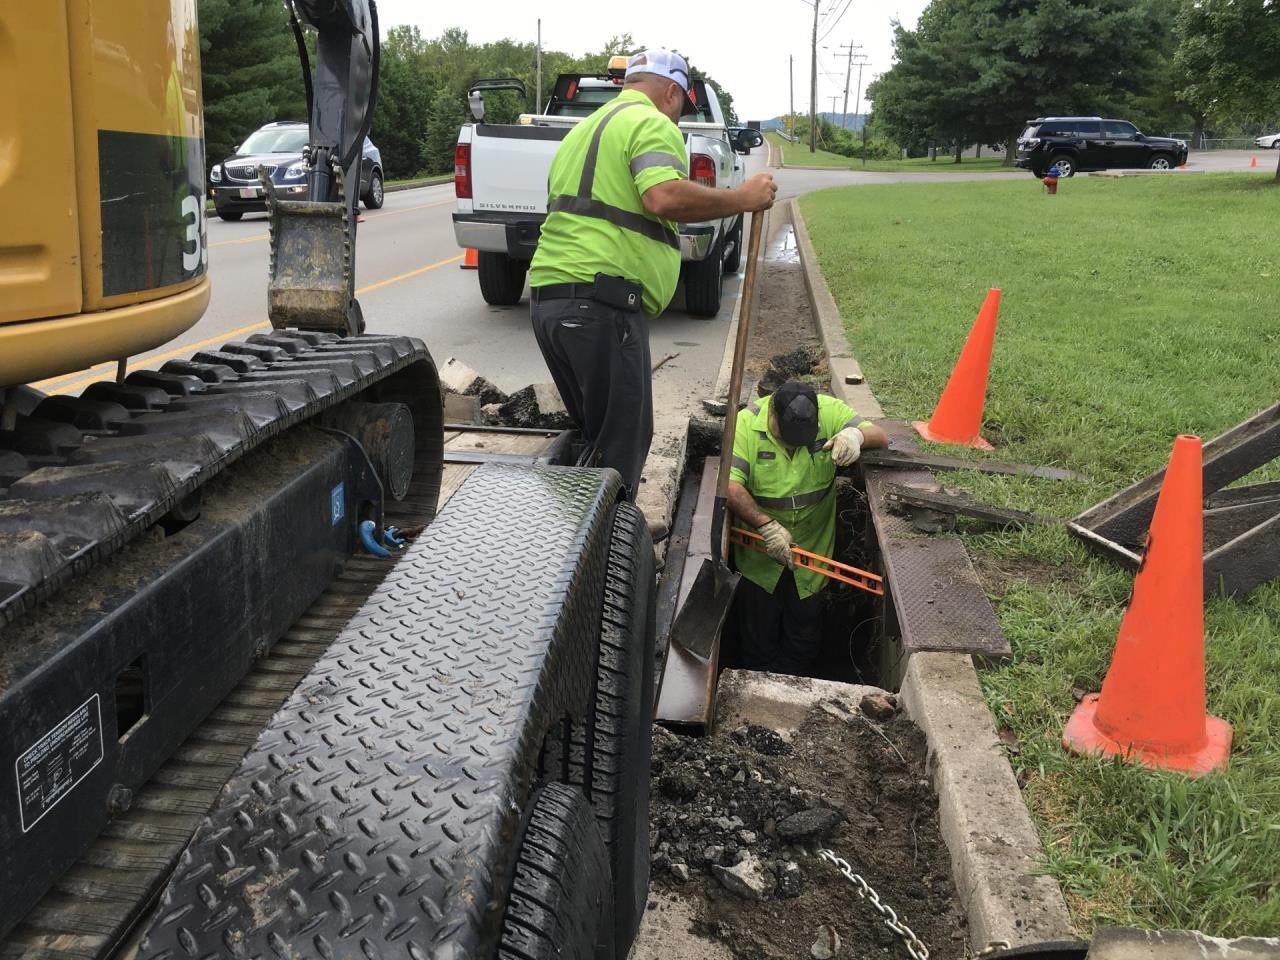 Photo of public works employees repairing drain